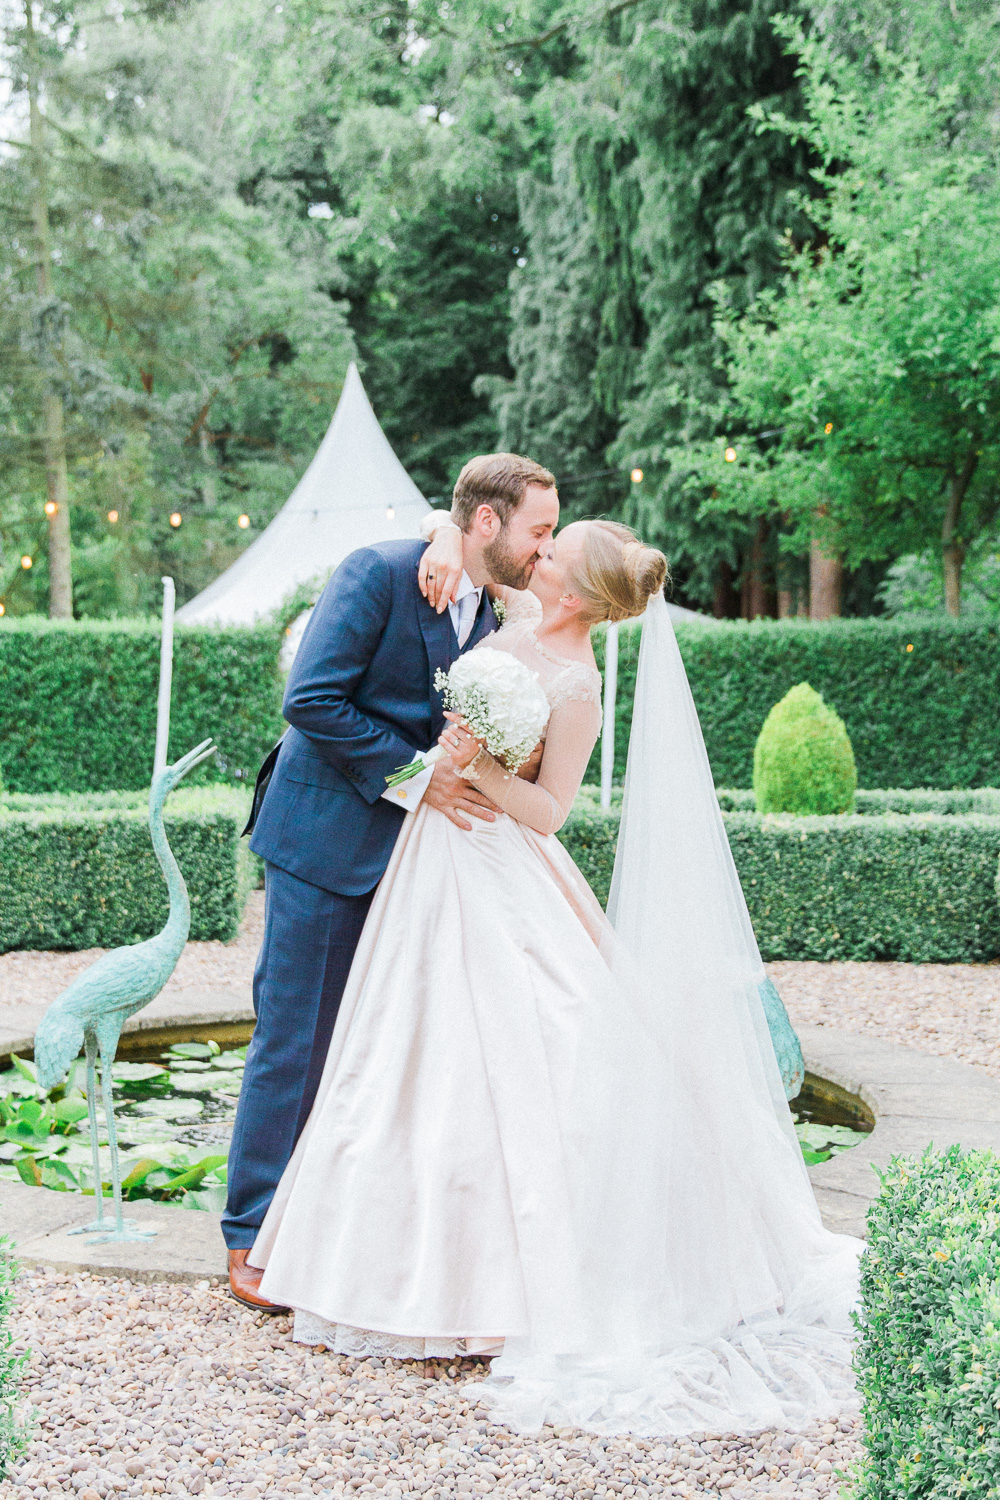 Bride and groom kissing at their English garden wedding